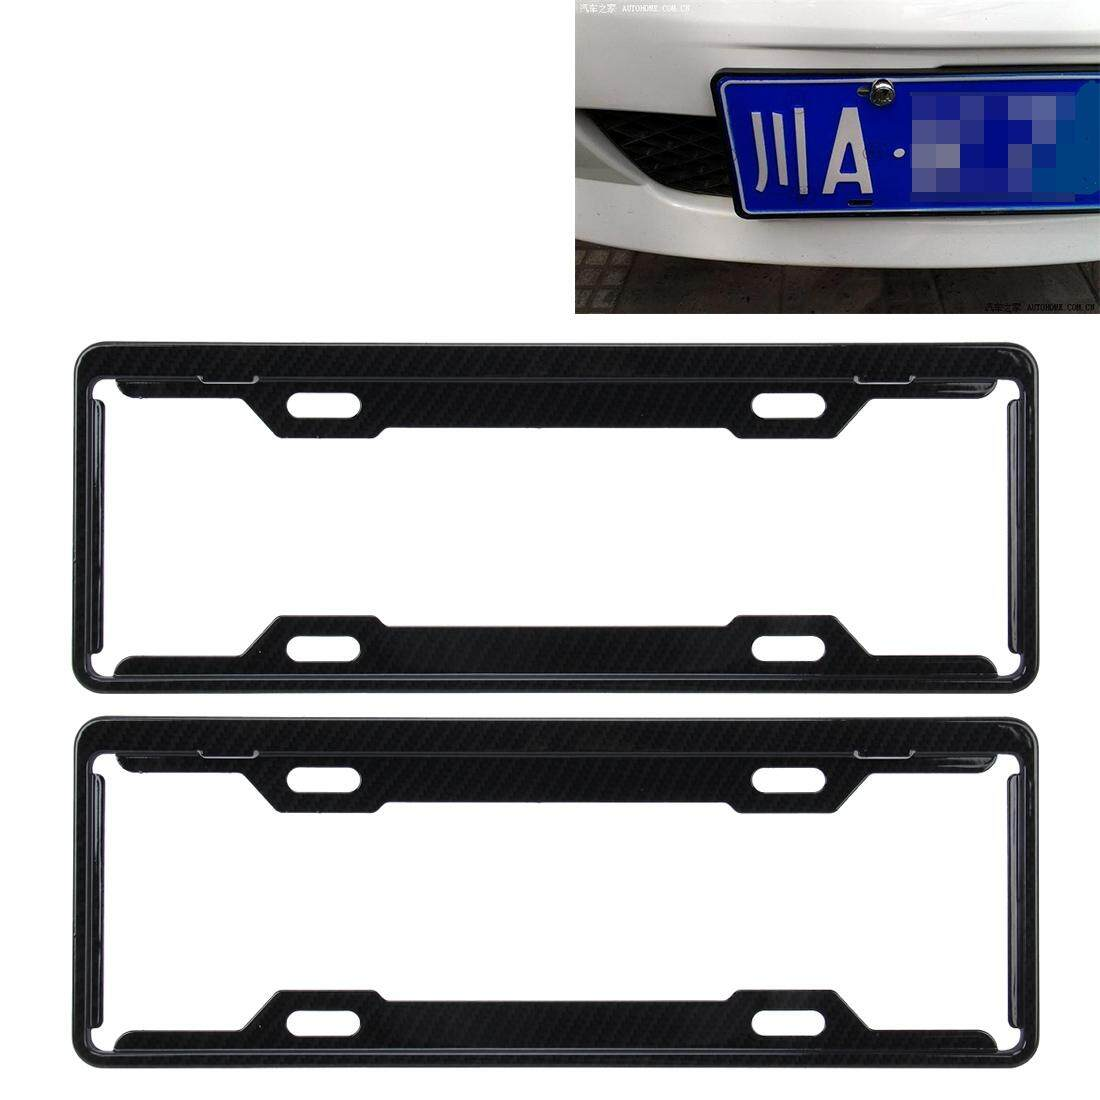 License Plate Covers & Frames - Buy License Plate Covers & Frames at ...